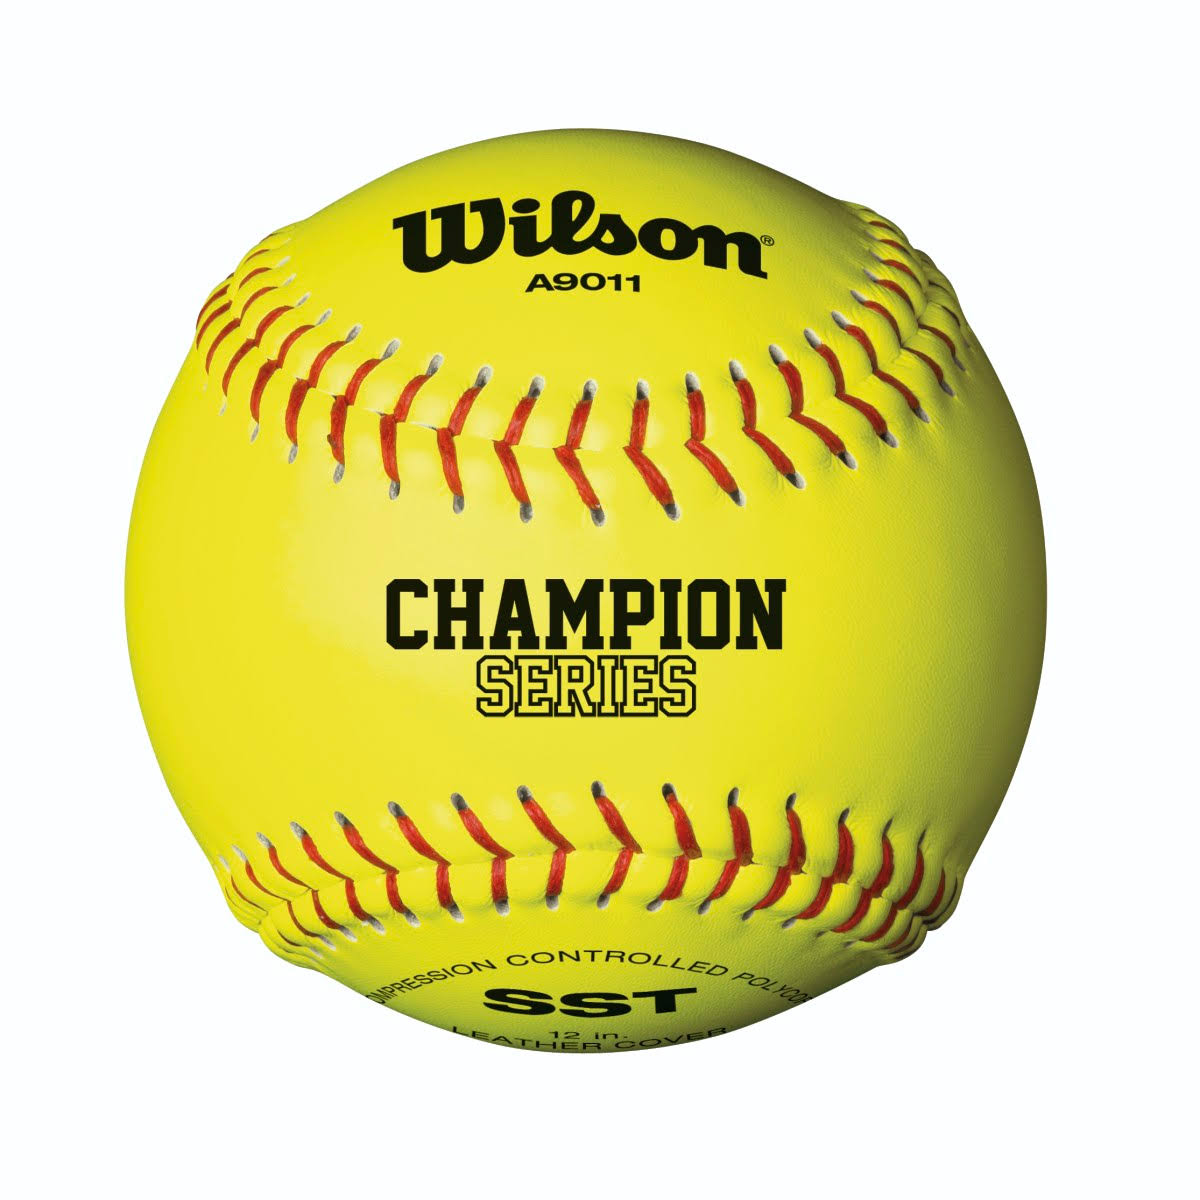 "Wilson Fastpitch Softball - Optic Yellow, 12"", 12pk"